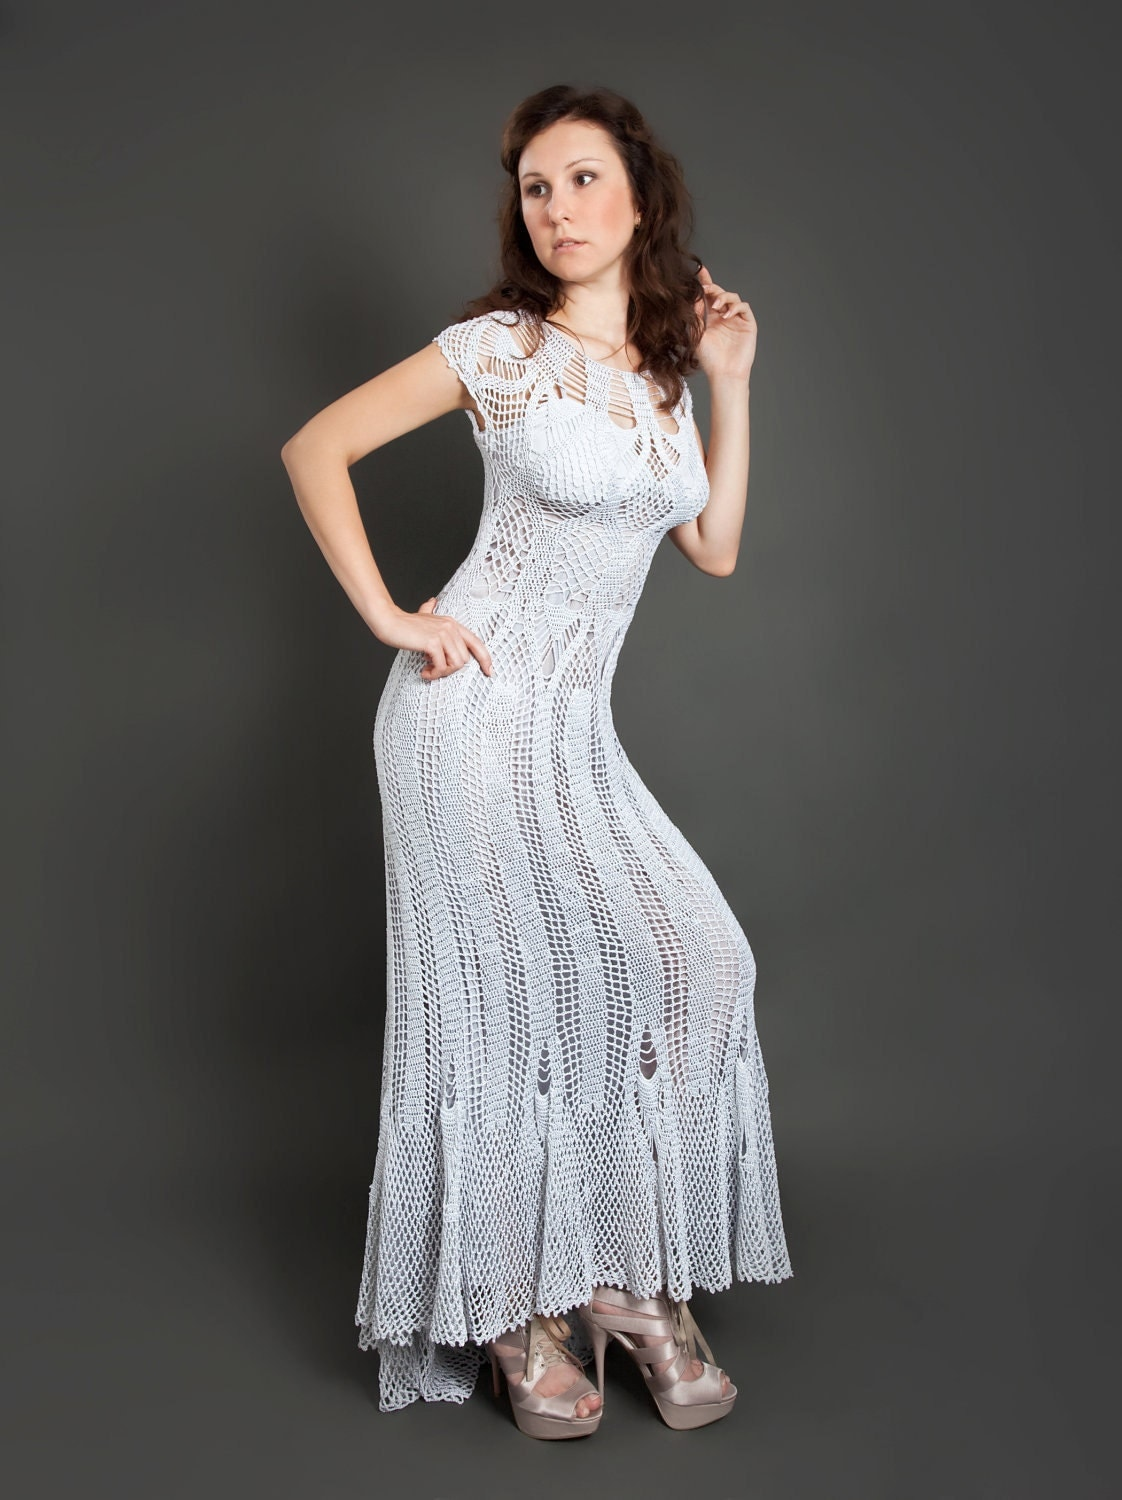 Grey metallized exclusive long crochet dress hand crocheted dress made to order